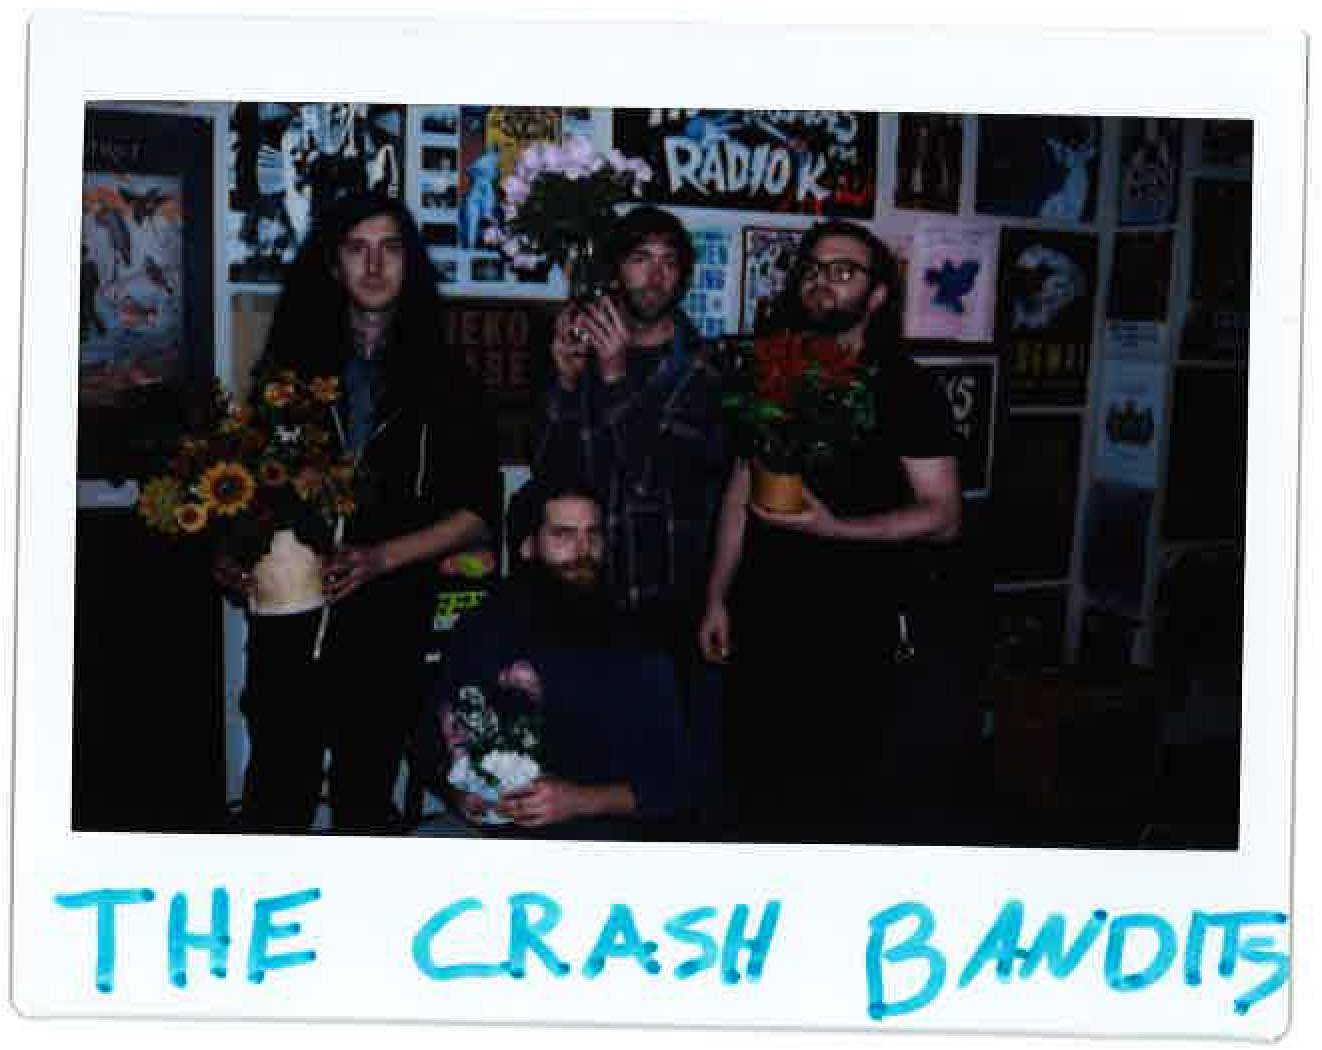 The Crash Bandits